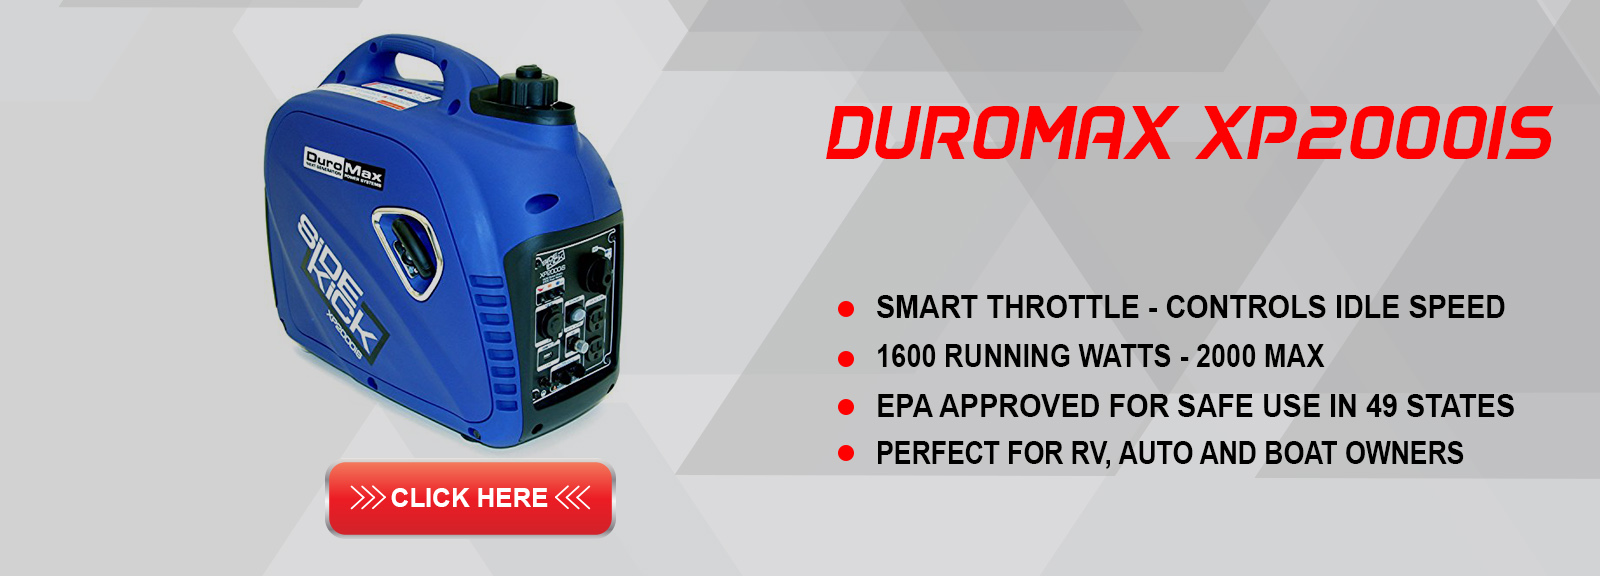 duromax xp2000is portable generator